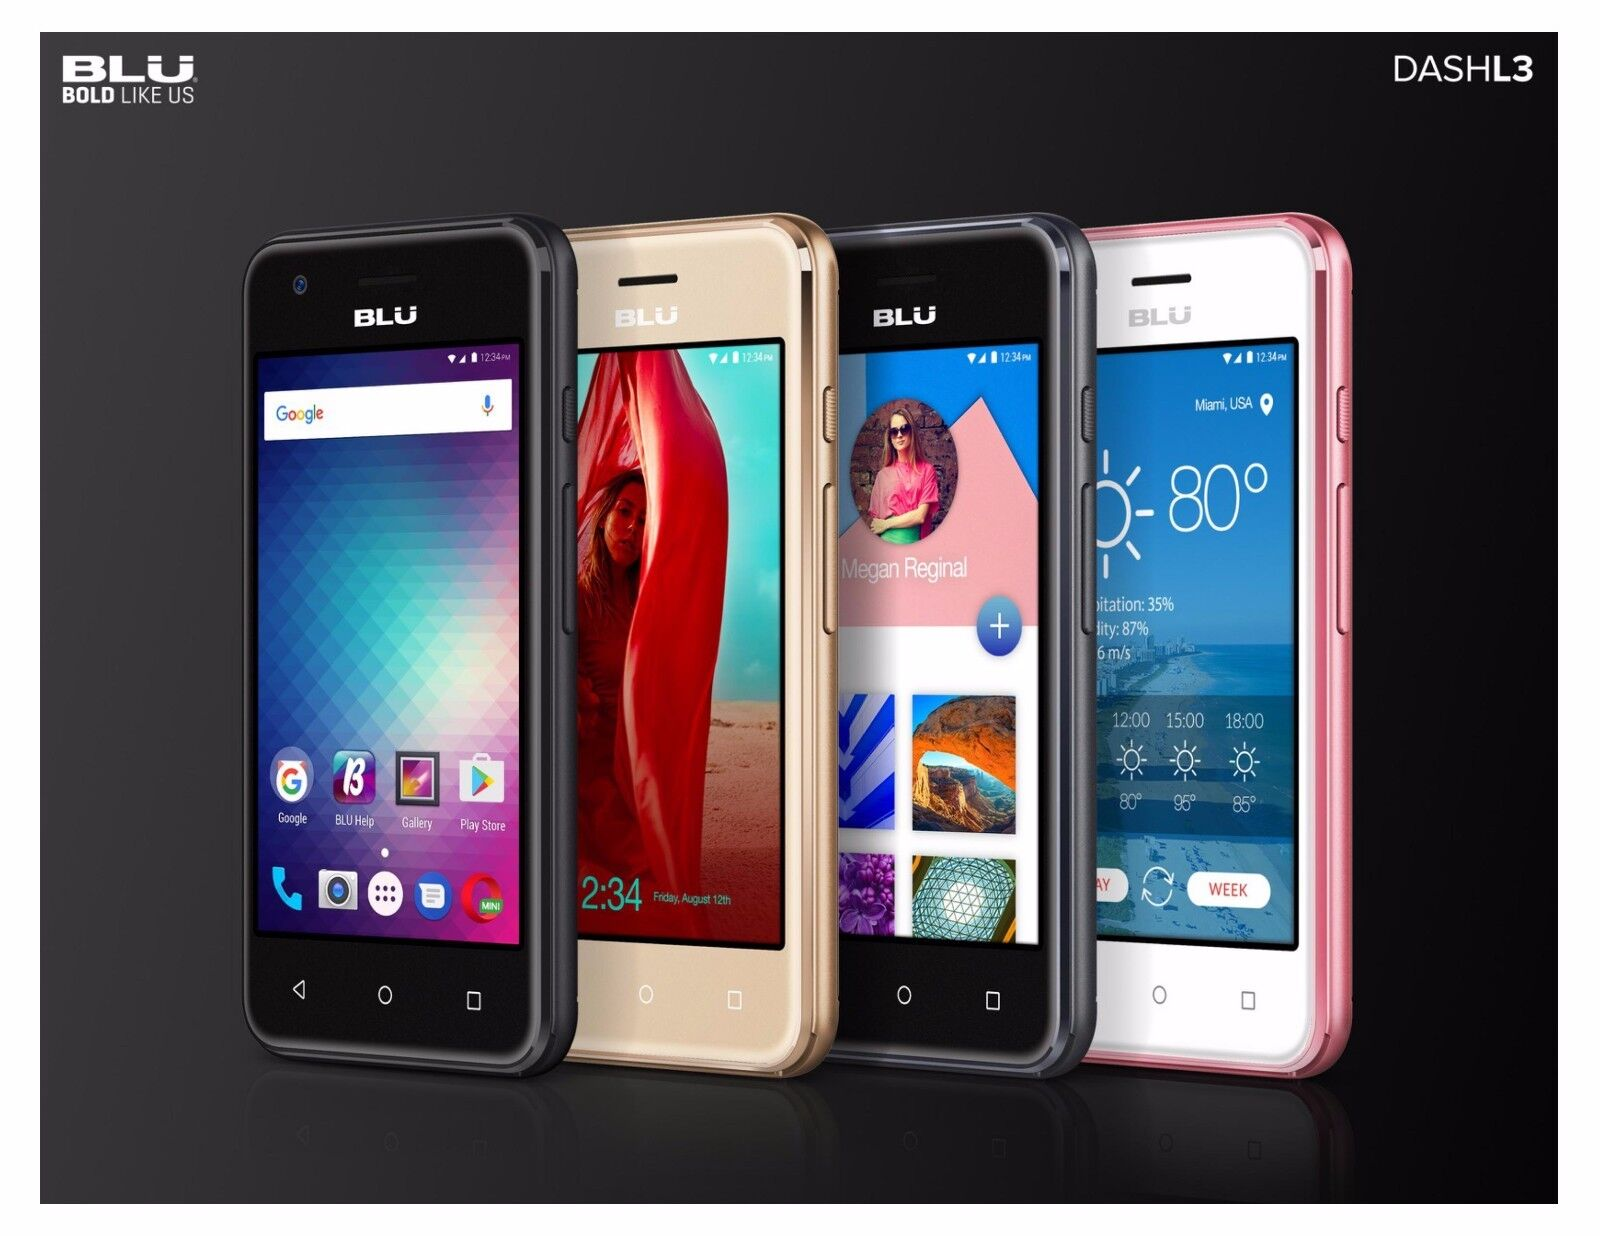 Android Phone -  Blu Dash L3 Unlocked Dual SIM Smartphone Android 6.0 Marshmallow GSM Cell Phone